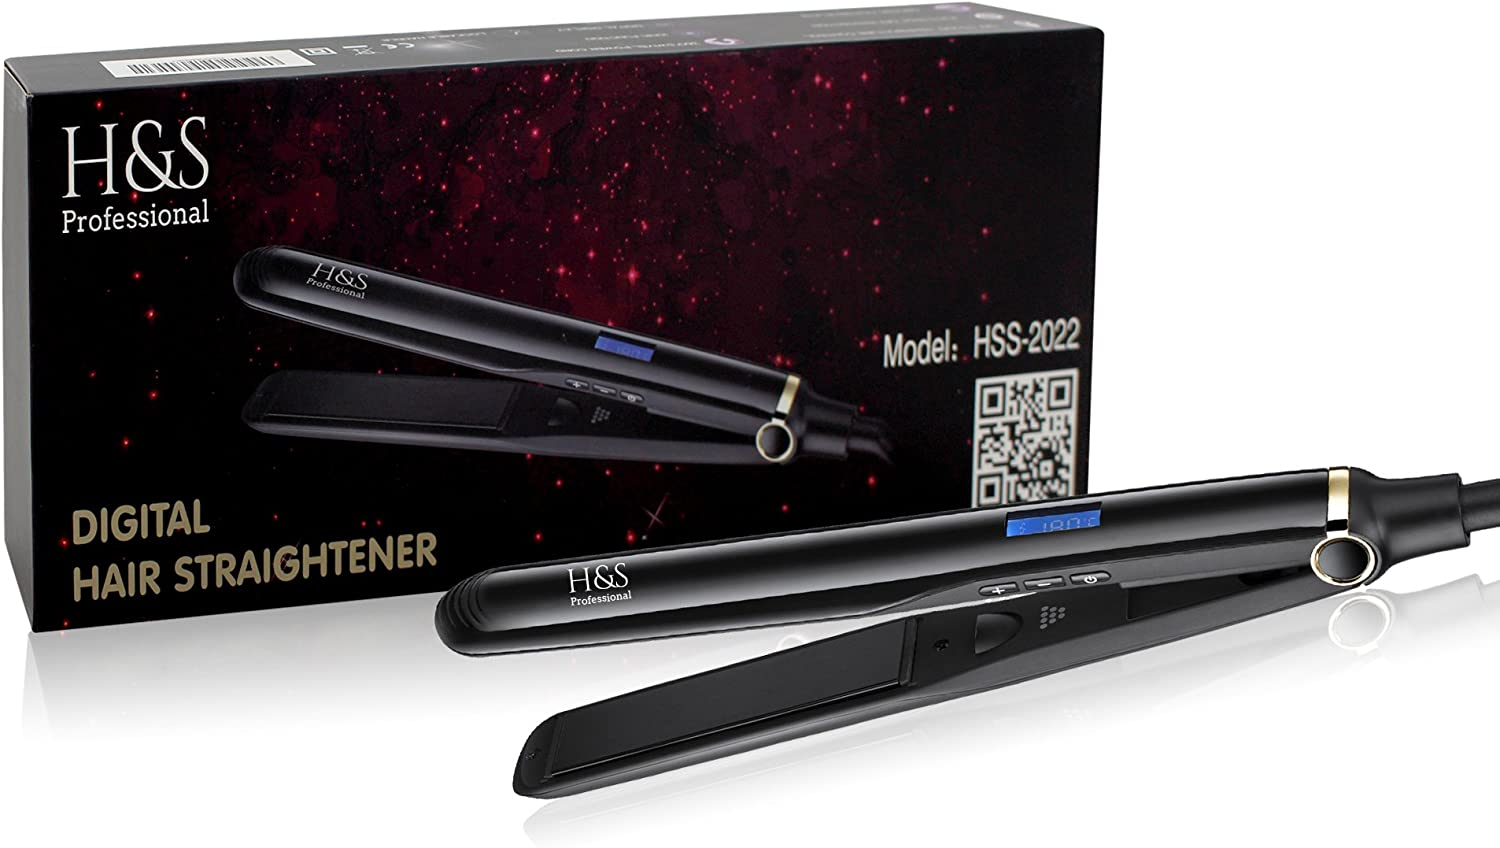 H&S Pro Ionic Hair Straightener Professional Flat Iron with Active Ionic Function for Instant Shine and Frizz Free Hair, 100% Ceramic Plates